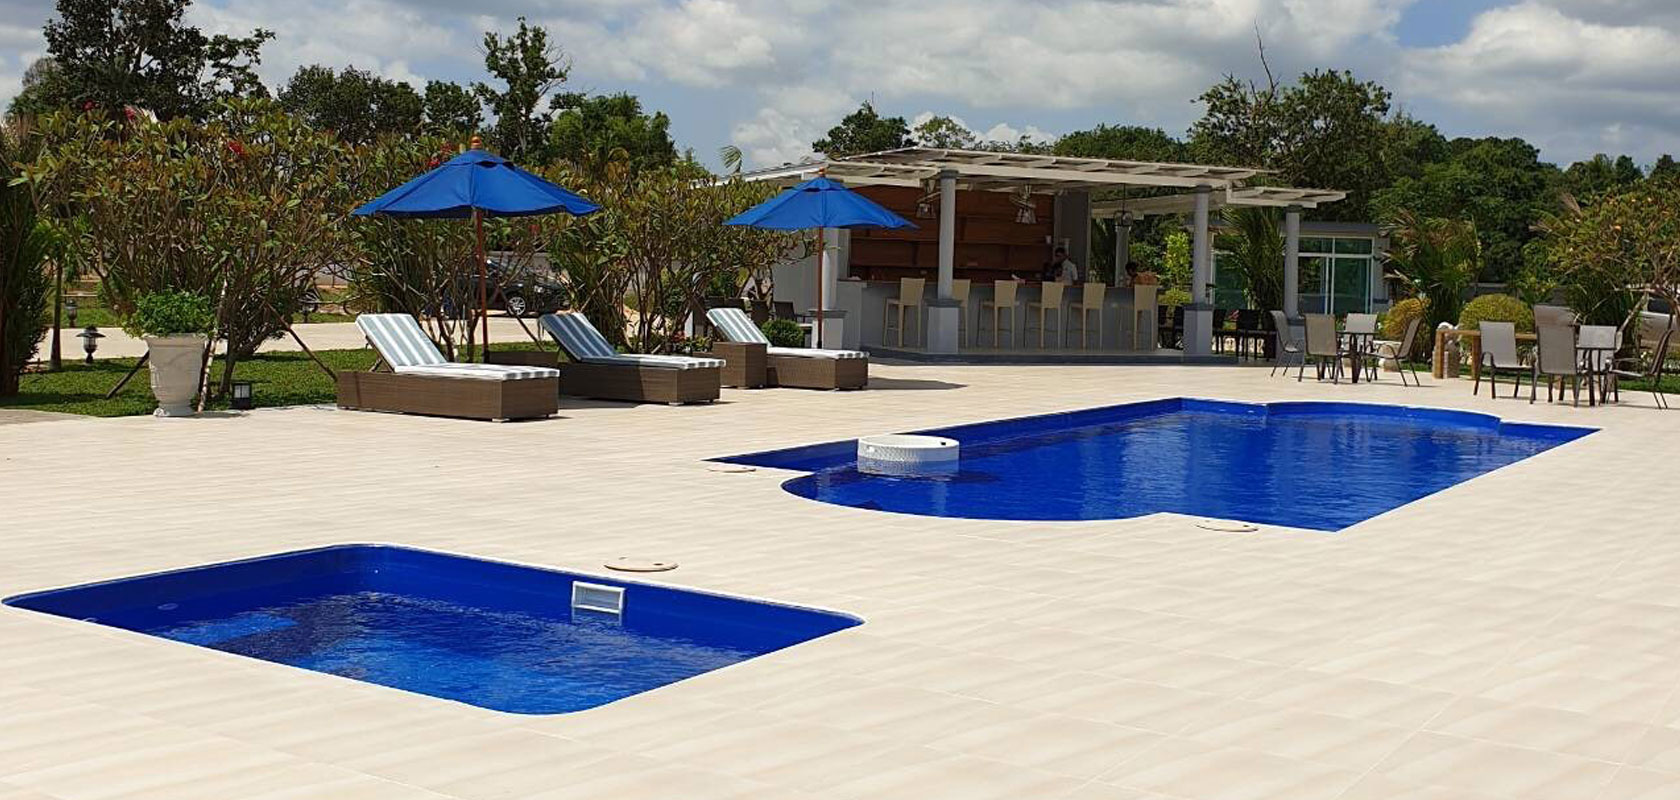 <h1>Bermuda Pools Cambodia</h1><p>FIBREGLASS POOLS</p>